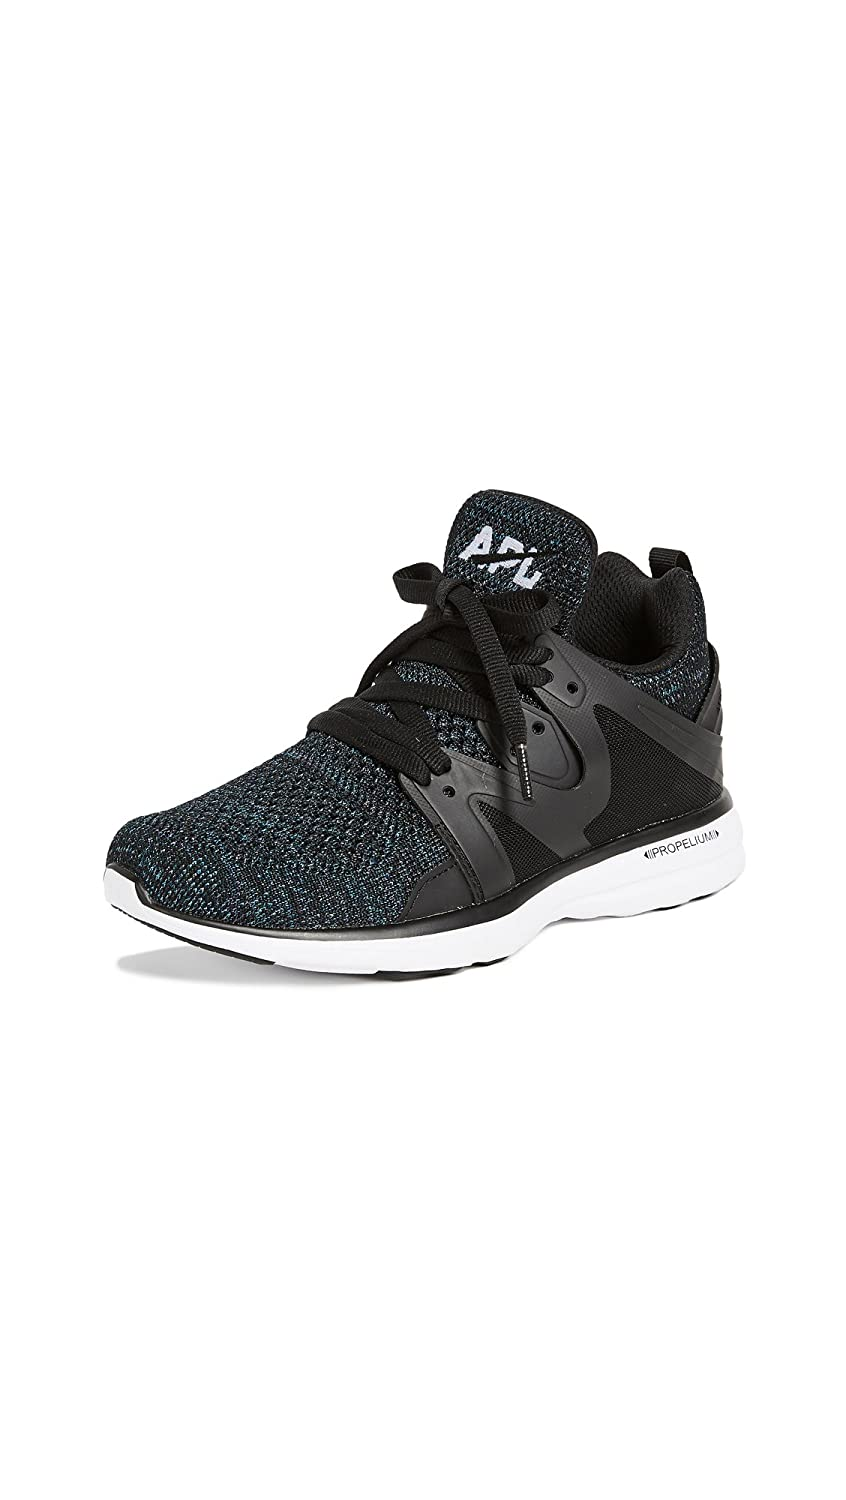 APL: Athletic Propulsion Labs Women's Ascend Sneakers B075FX5JKJ 9.5 B(M) US|Black/Iridescent